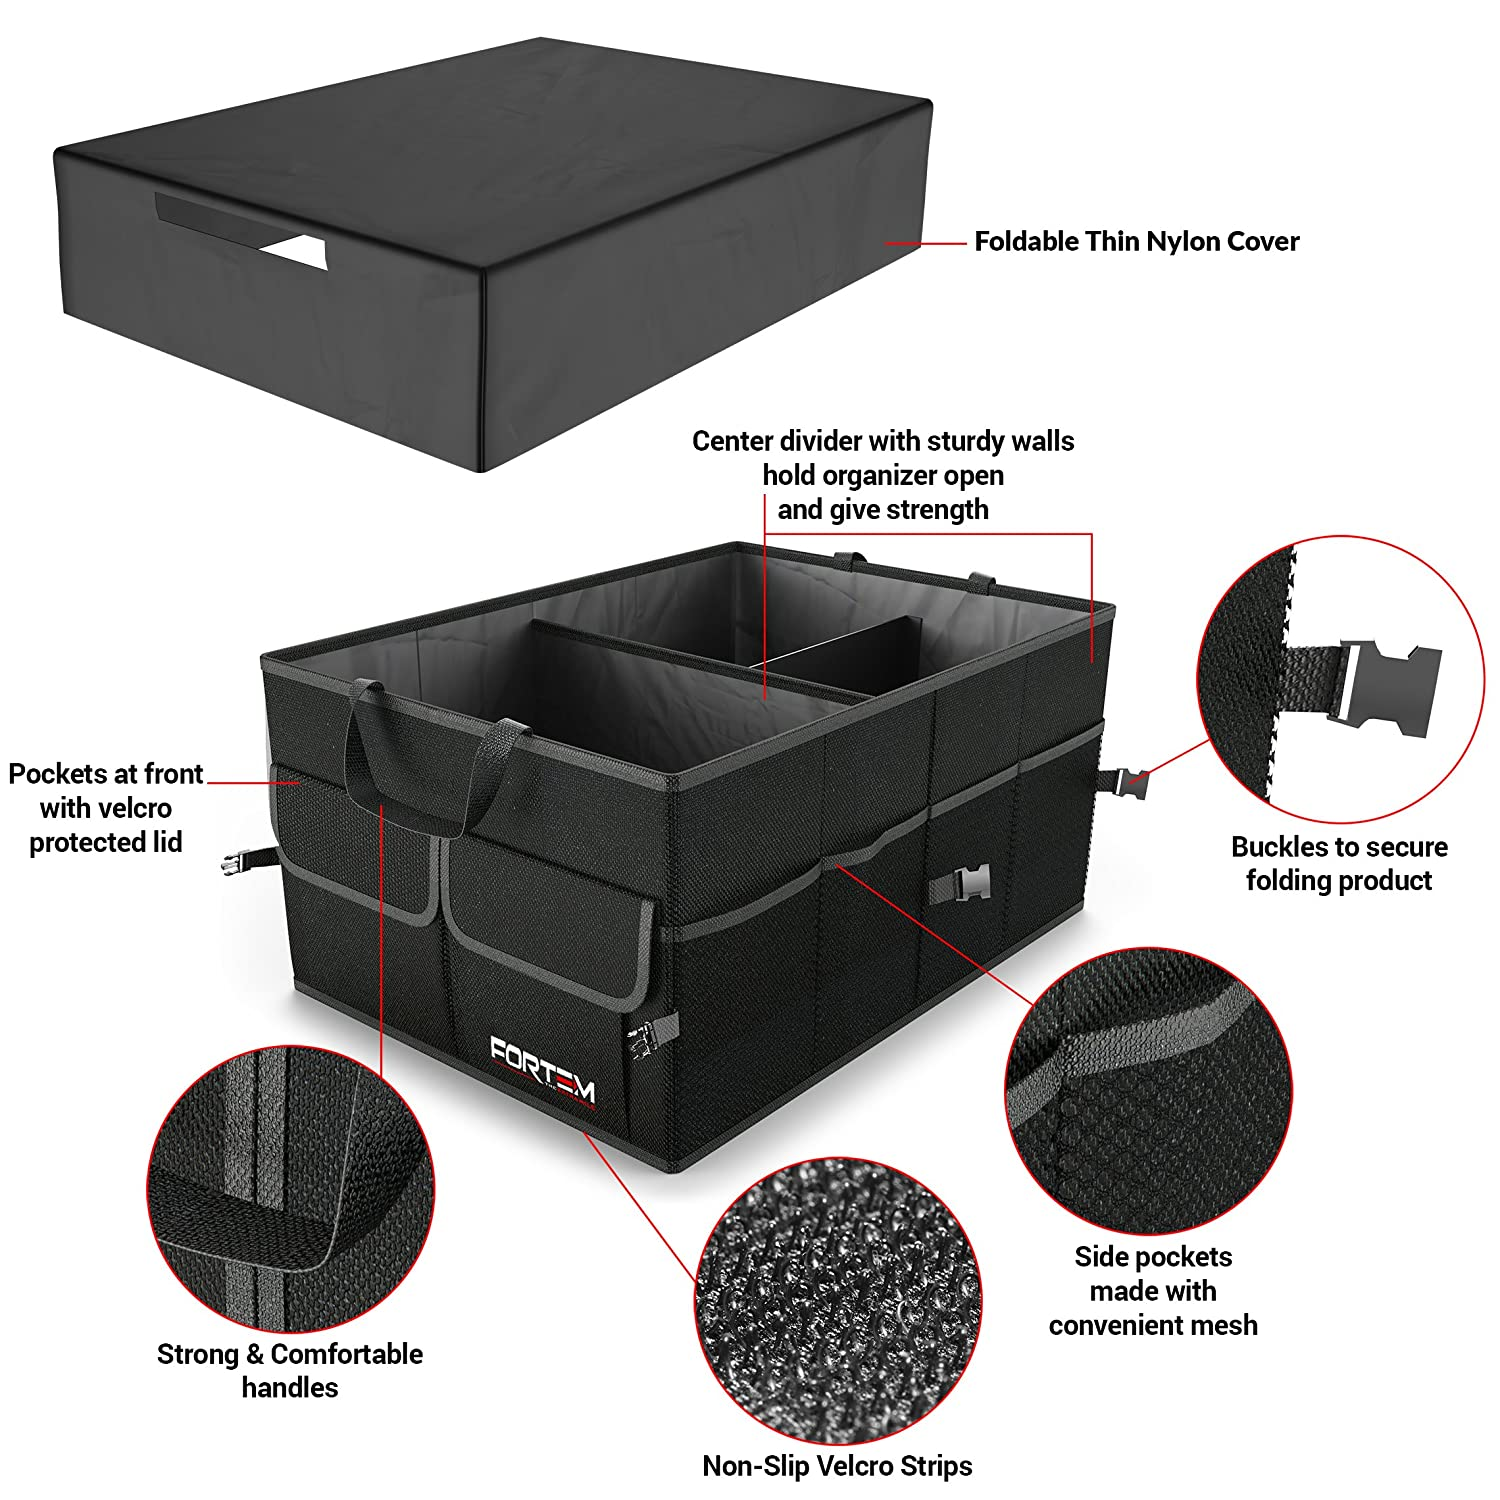 The Best Trunk Organizers For Your Vehicle: Reviews & Buying Guide 12